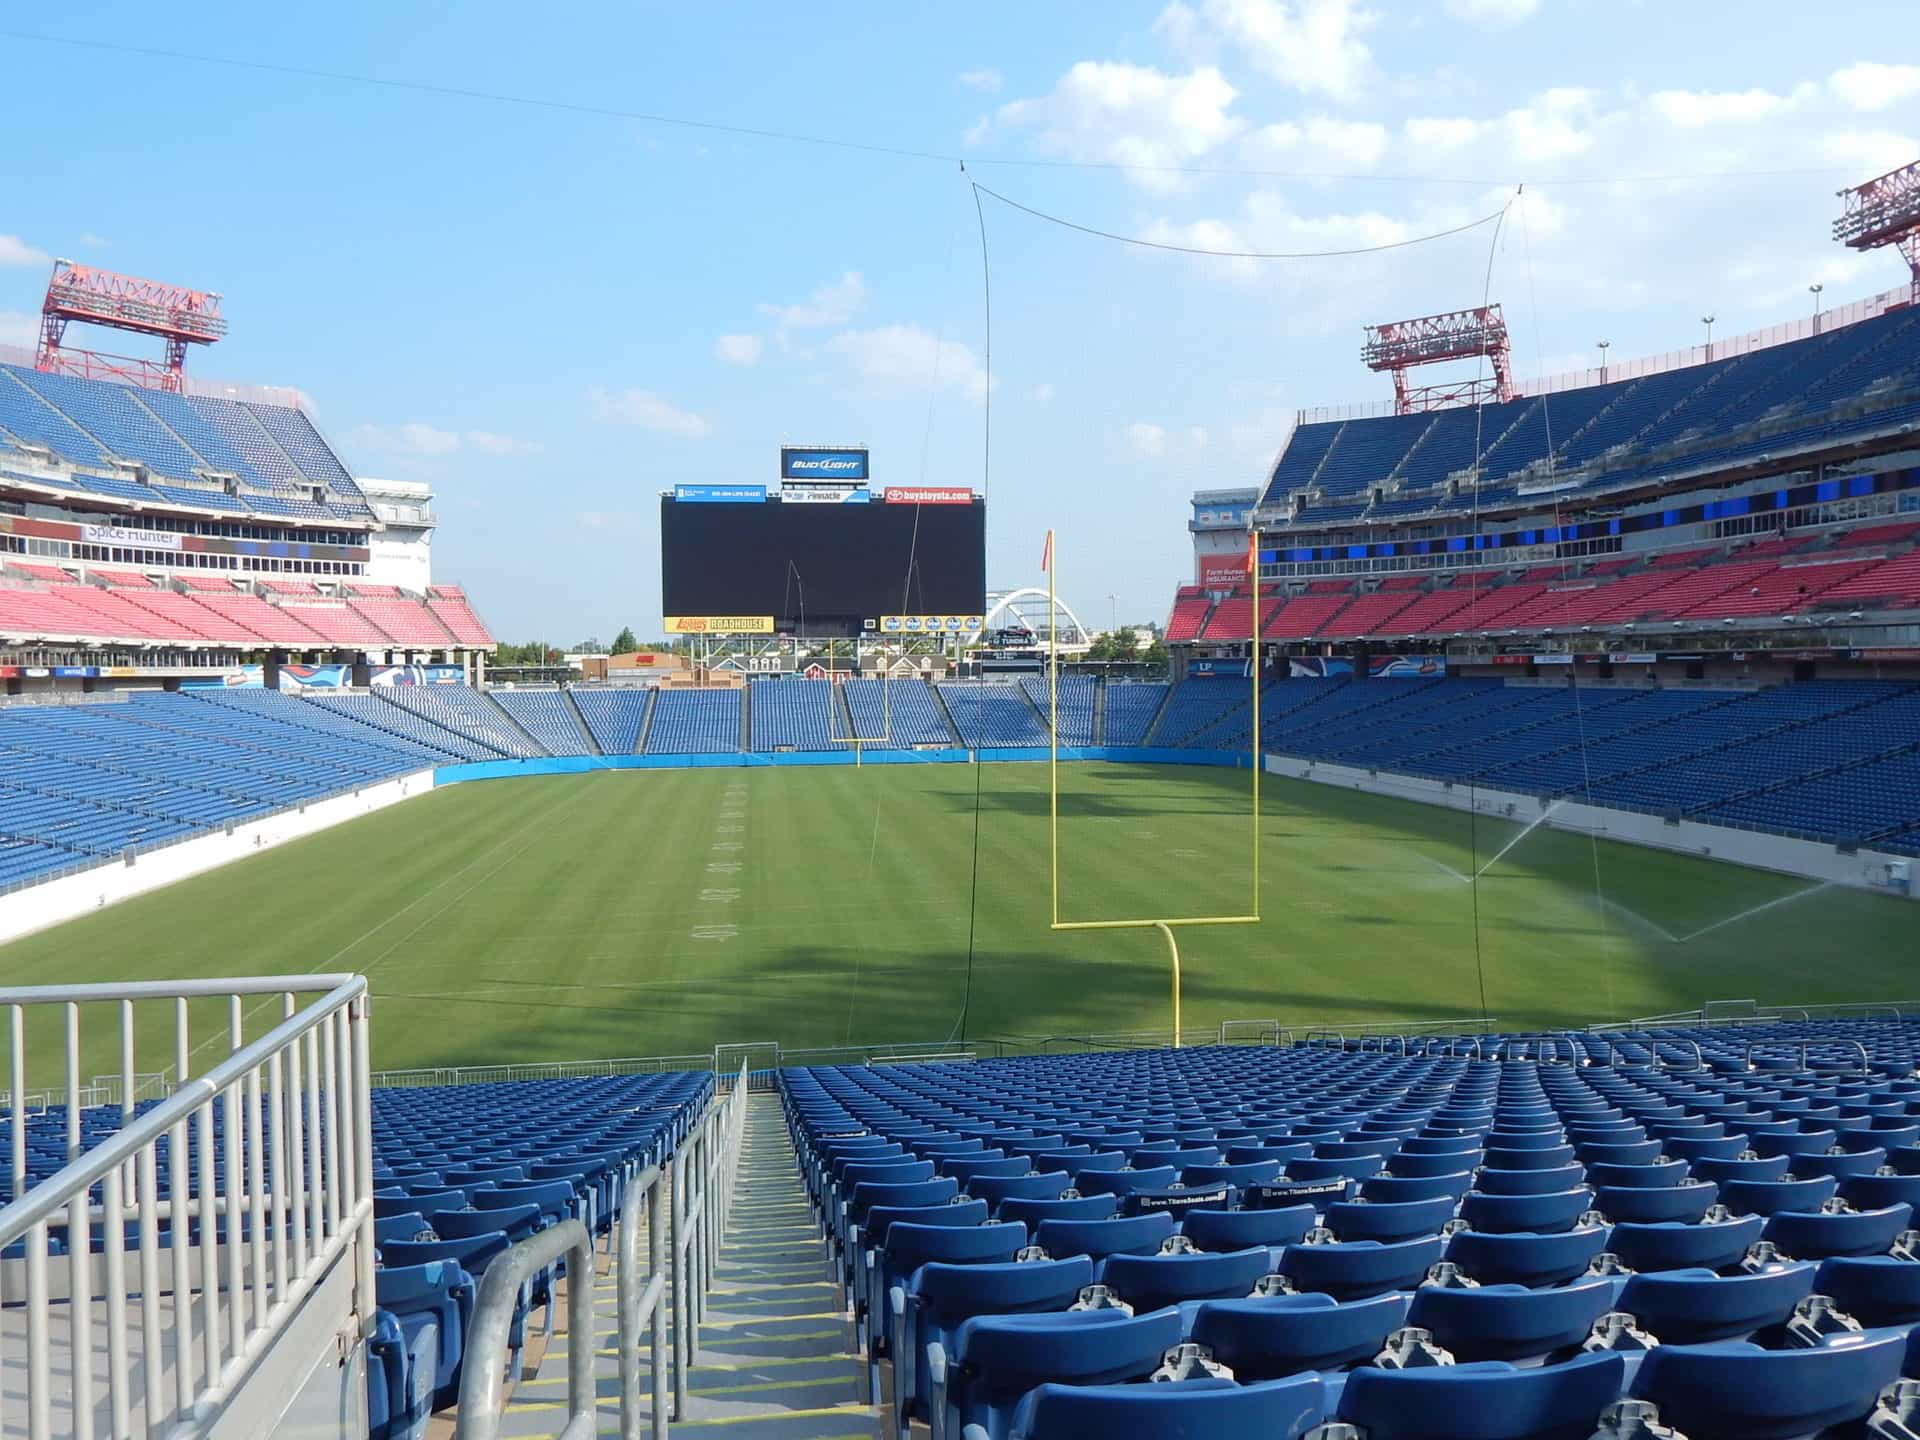 Ryan O'Neal - Don't Forget About FARRAH FAWCETT! m Pictures of lp field in nashville tn